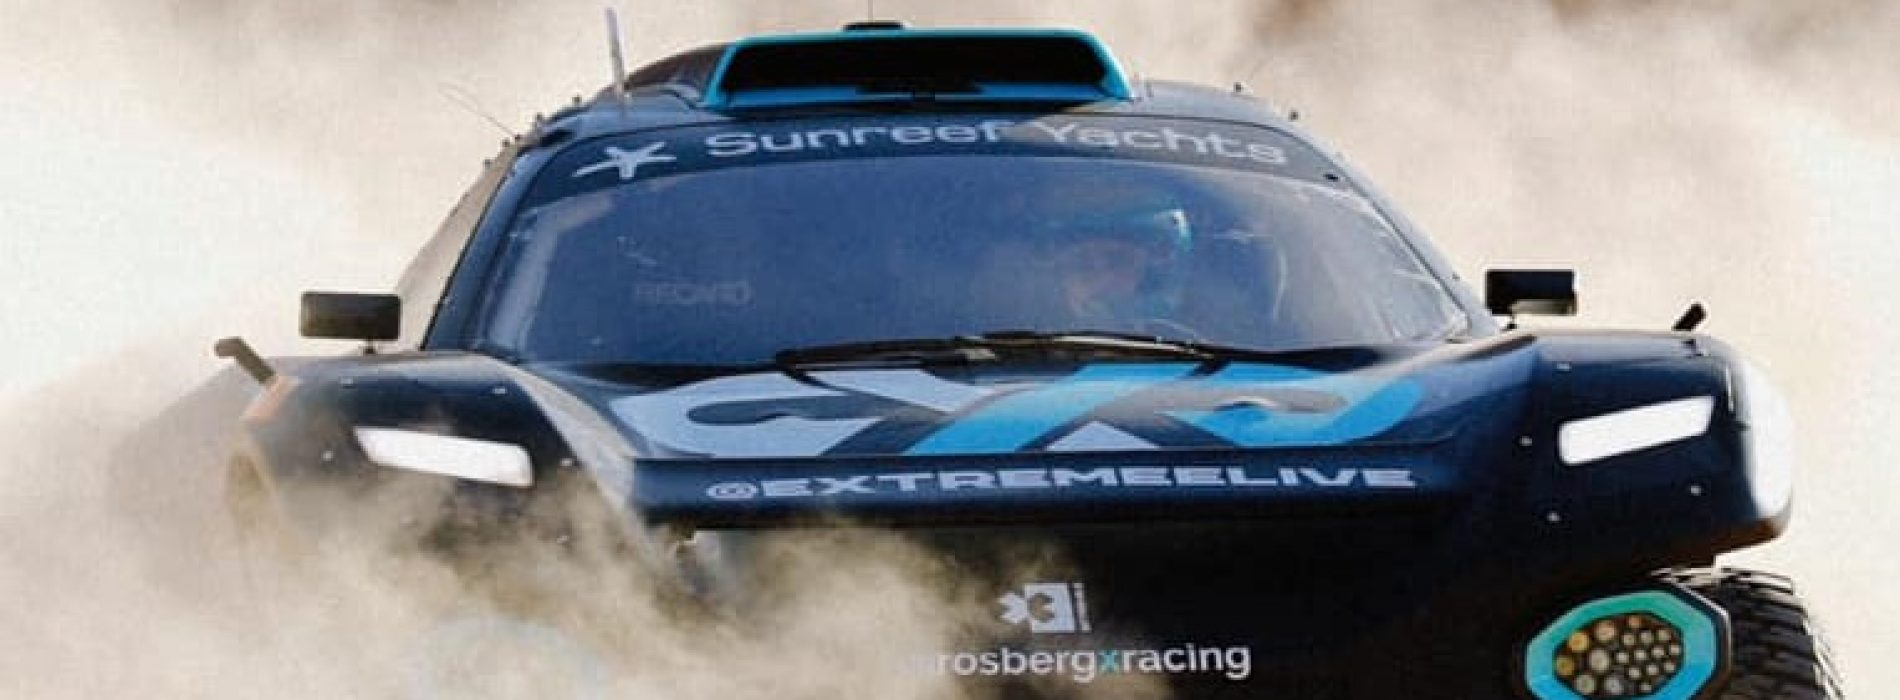 Extreme E opens new era of sustainable racing this weekend- overview of qualifying sessions- finals tomorrow